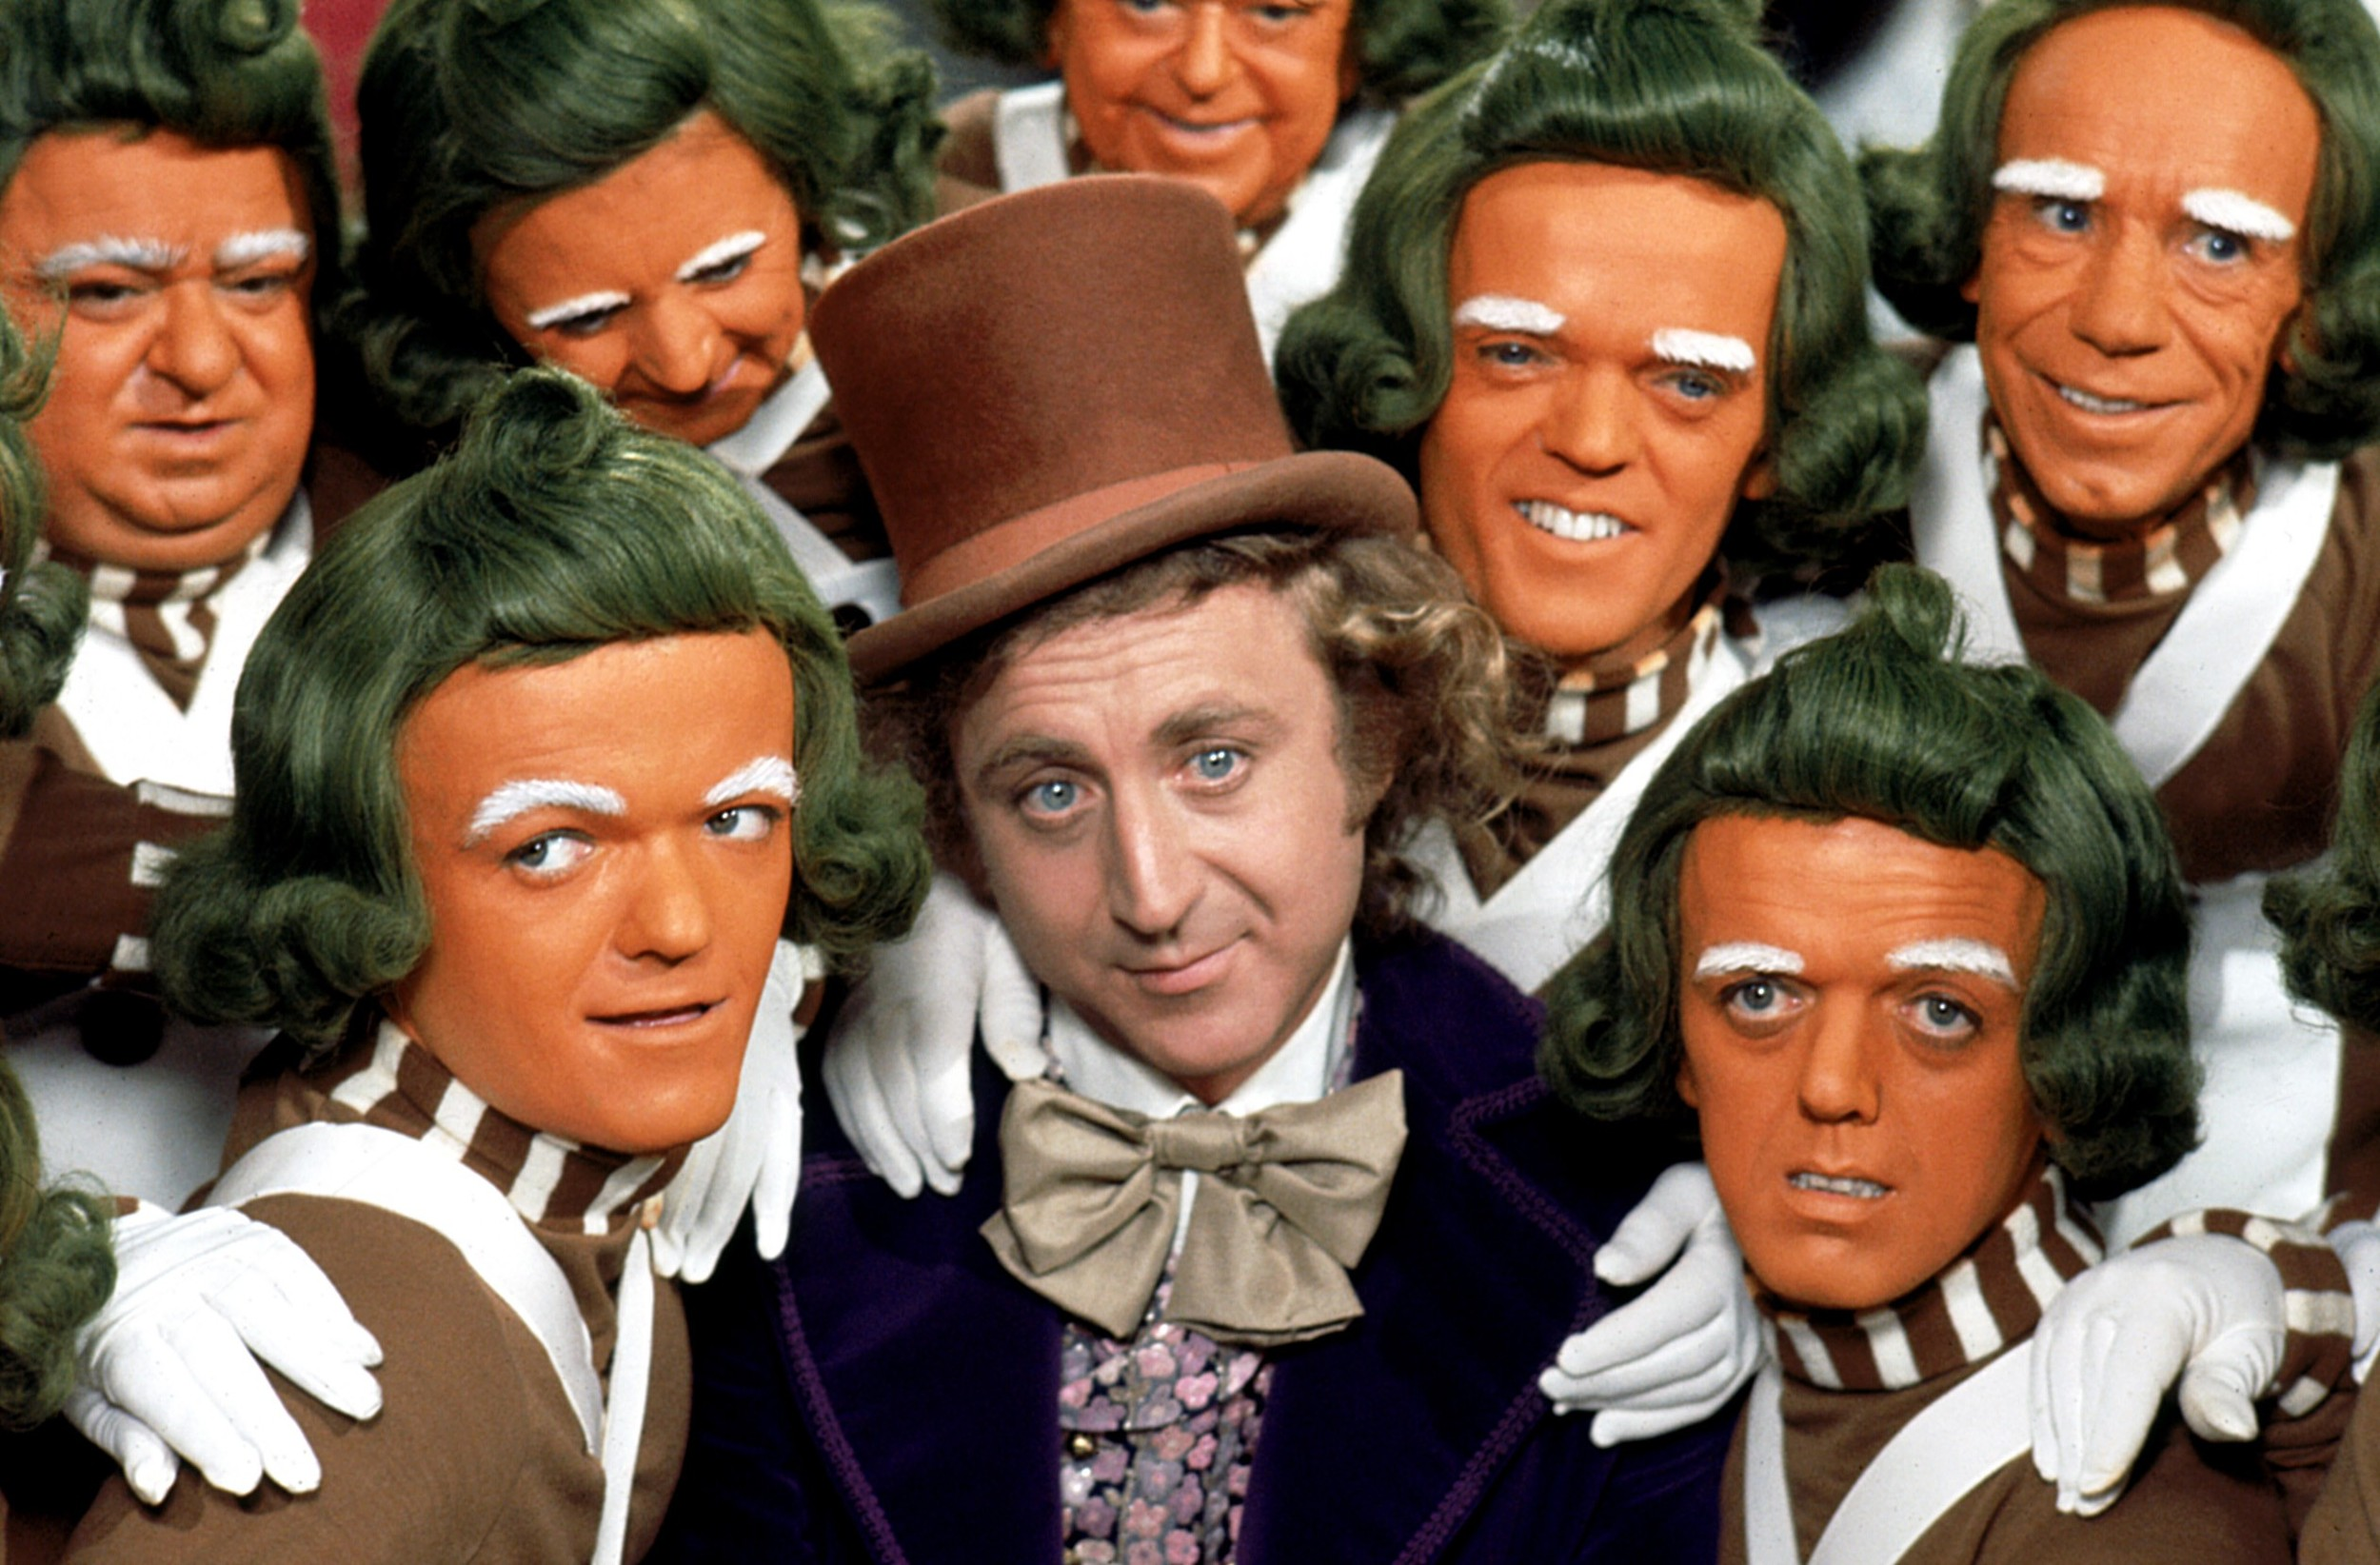 Gene Wilder immediately owned the character of Willy Wonka after the success of Mel Stuart's 1971 adaptation of 'Charlie & the Chocolate Factory', which was co-written for the screen by Roald Dahl.